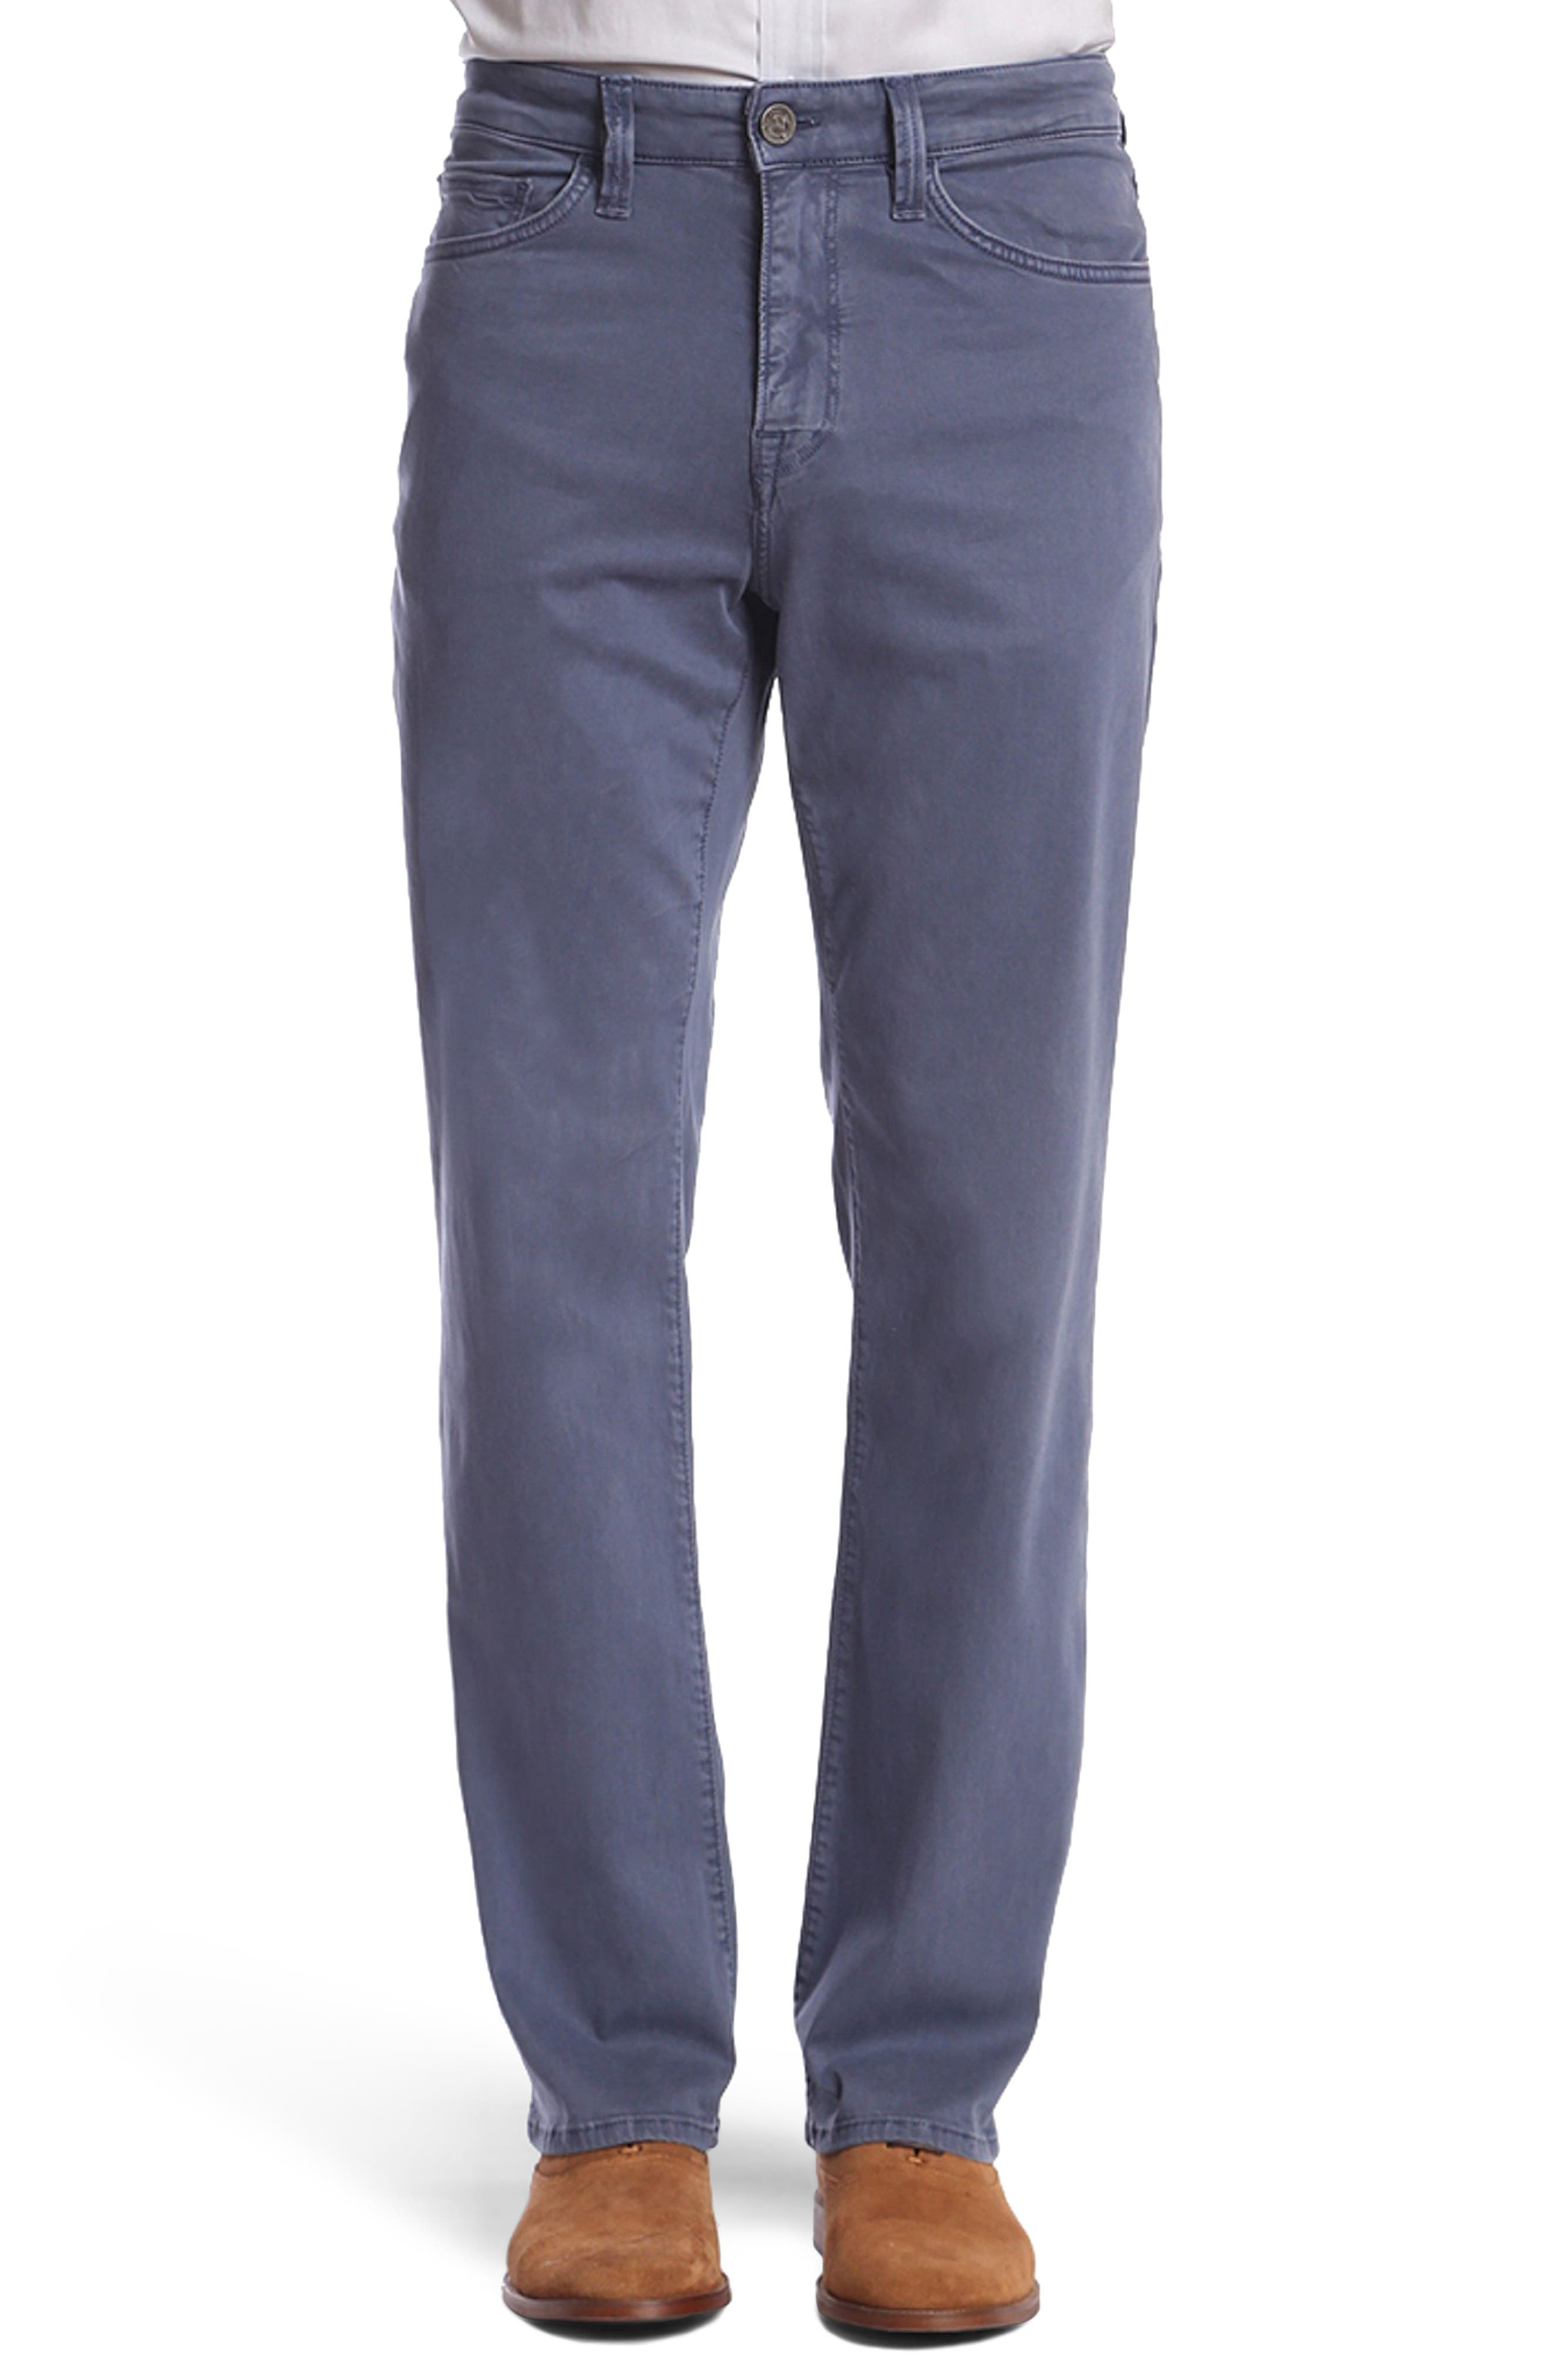 Charisma Relaxed Fit Jeans,                             Main thumbnail 1, color,                             Horizon Twill